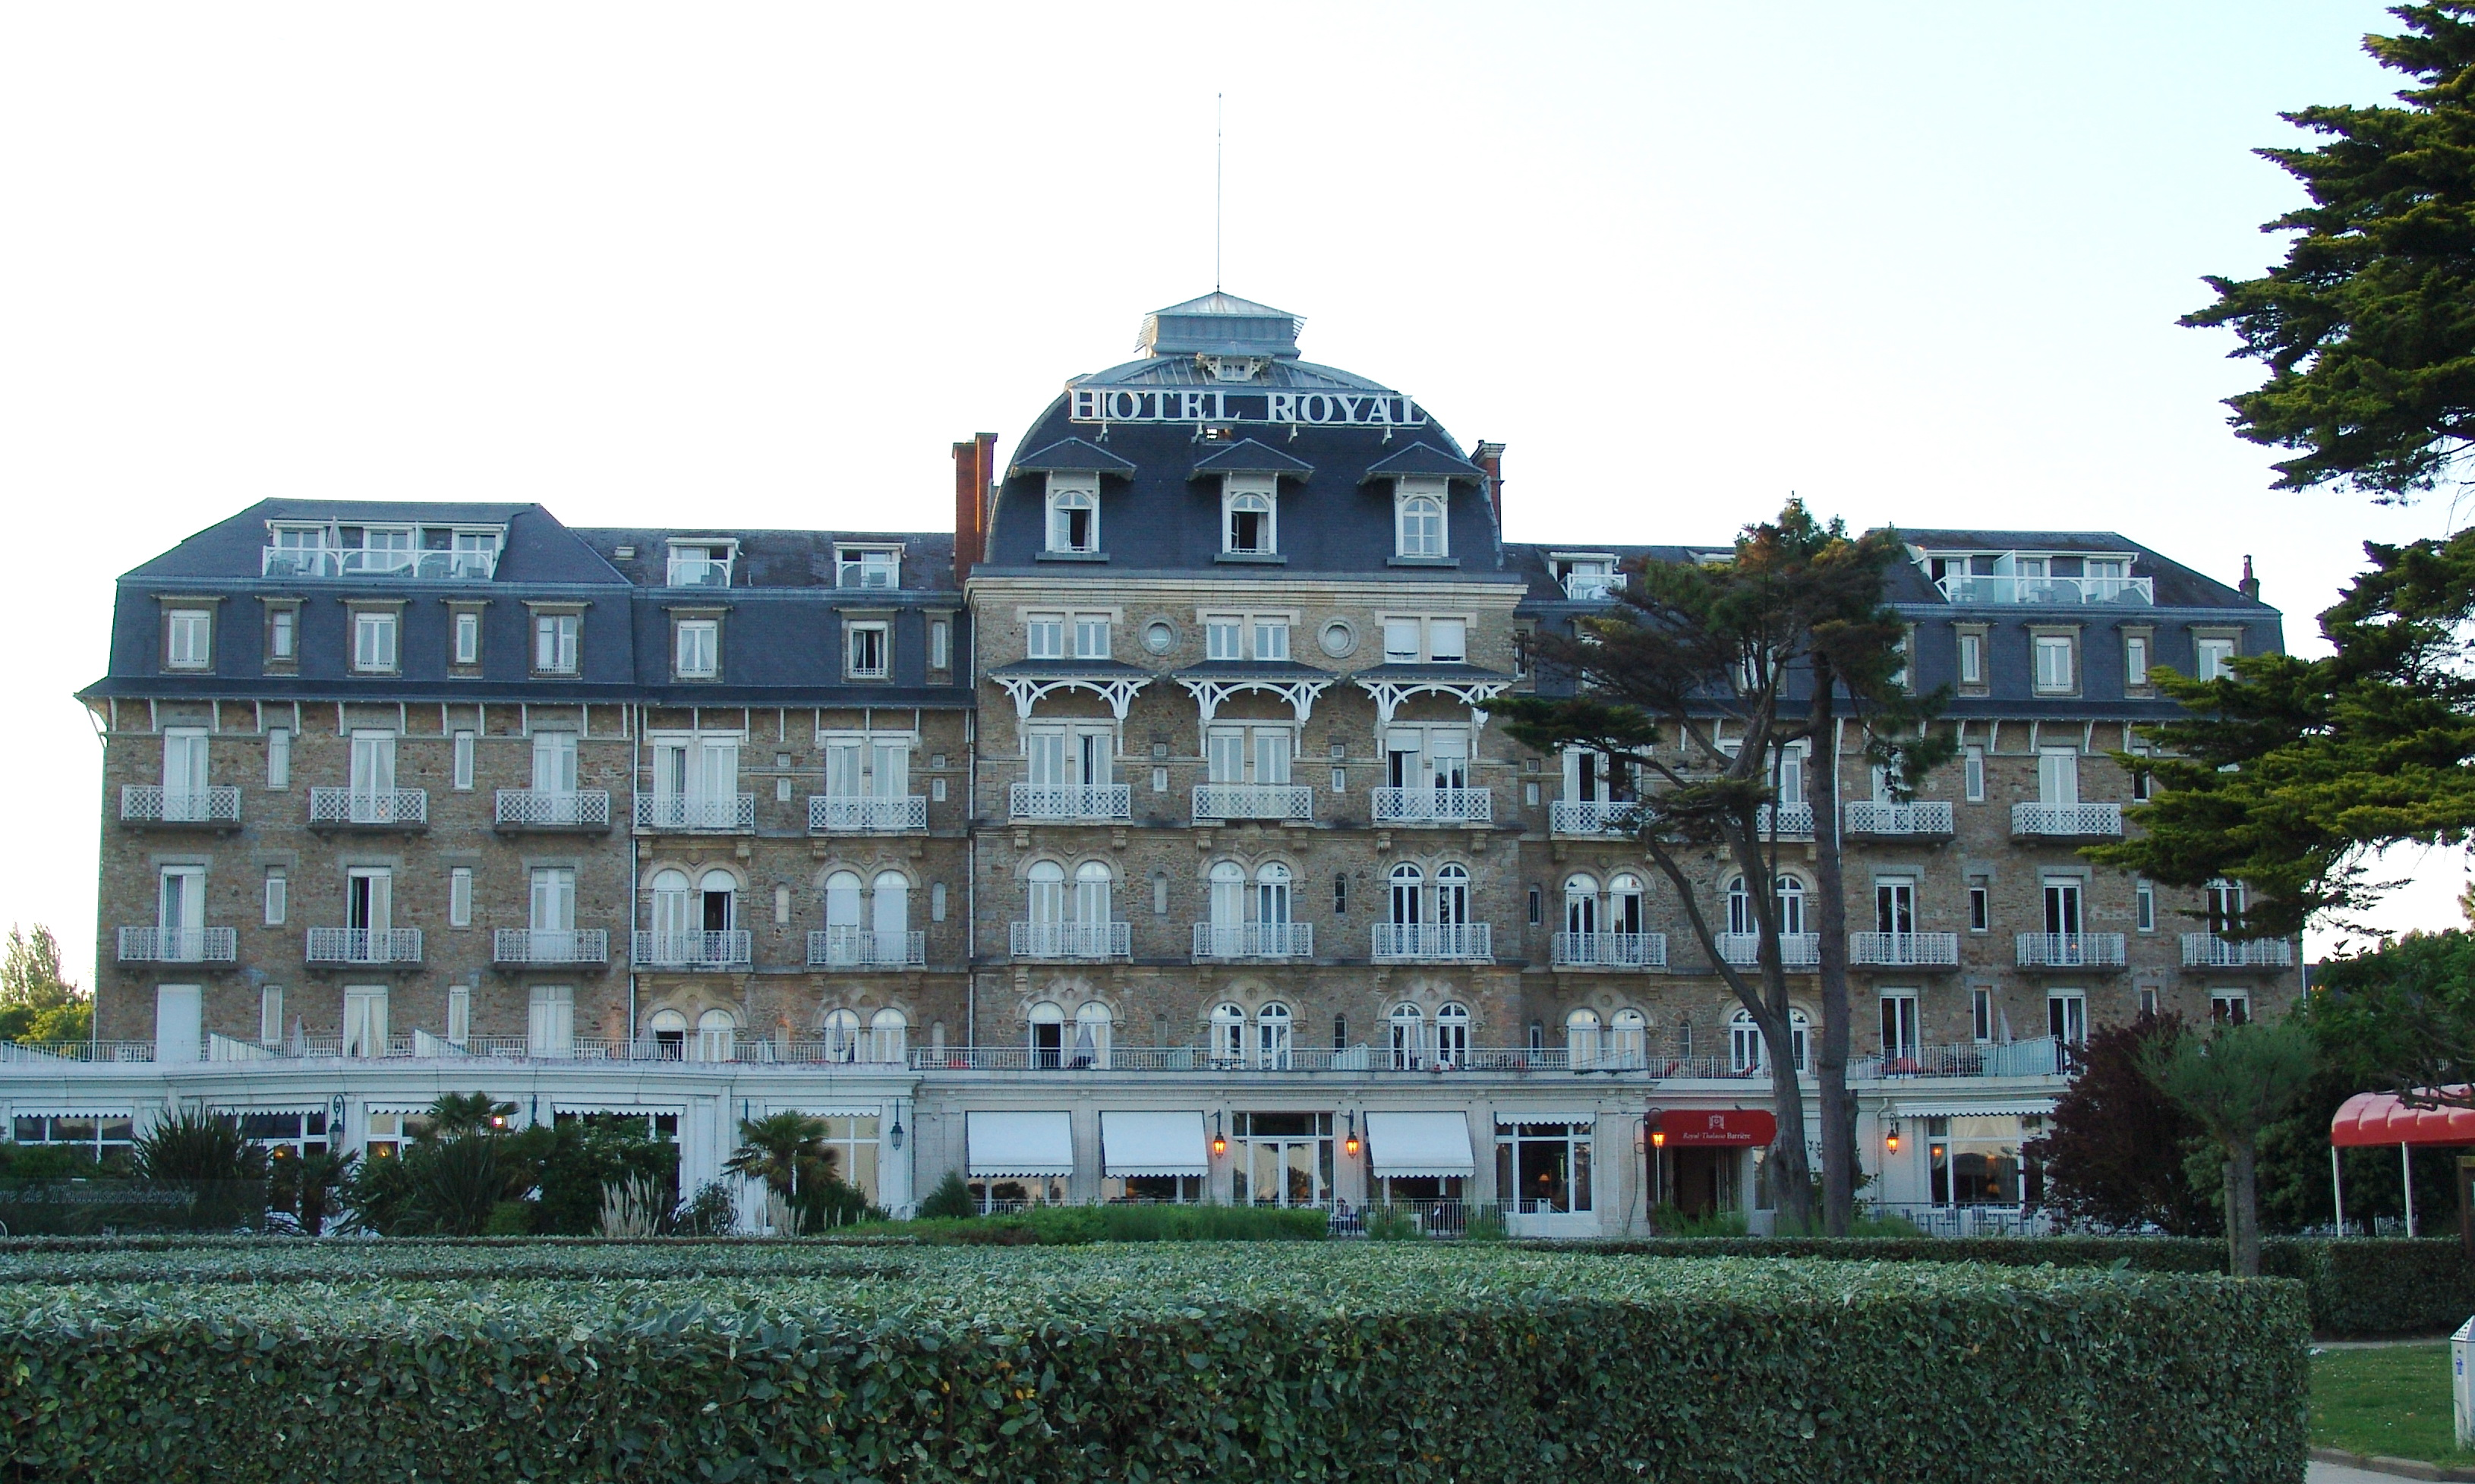 Hotel Royal La Baule